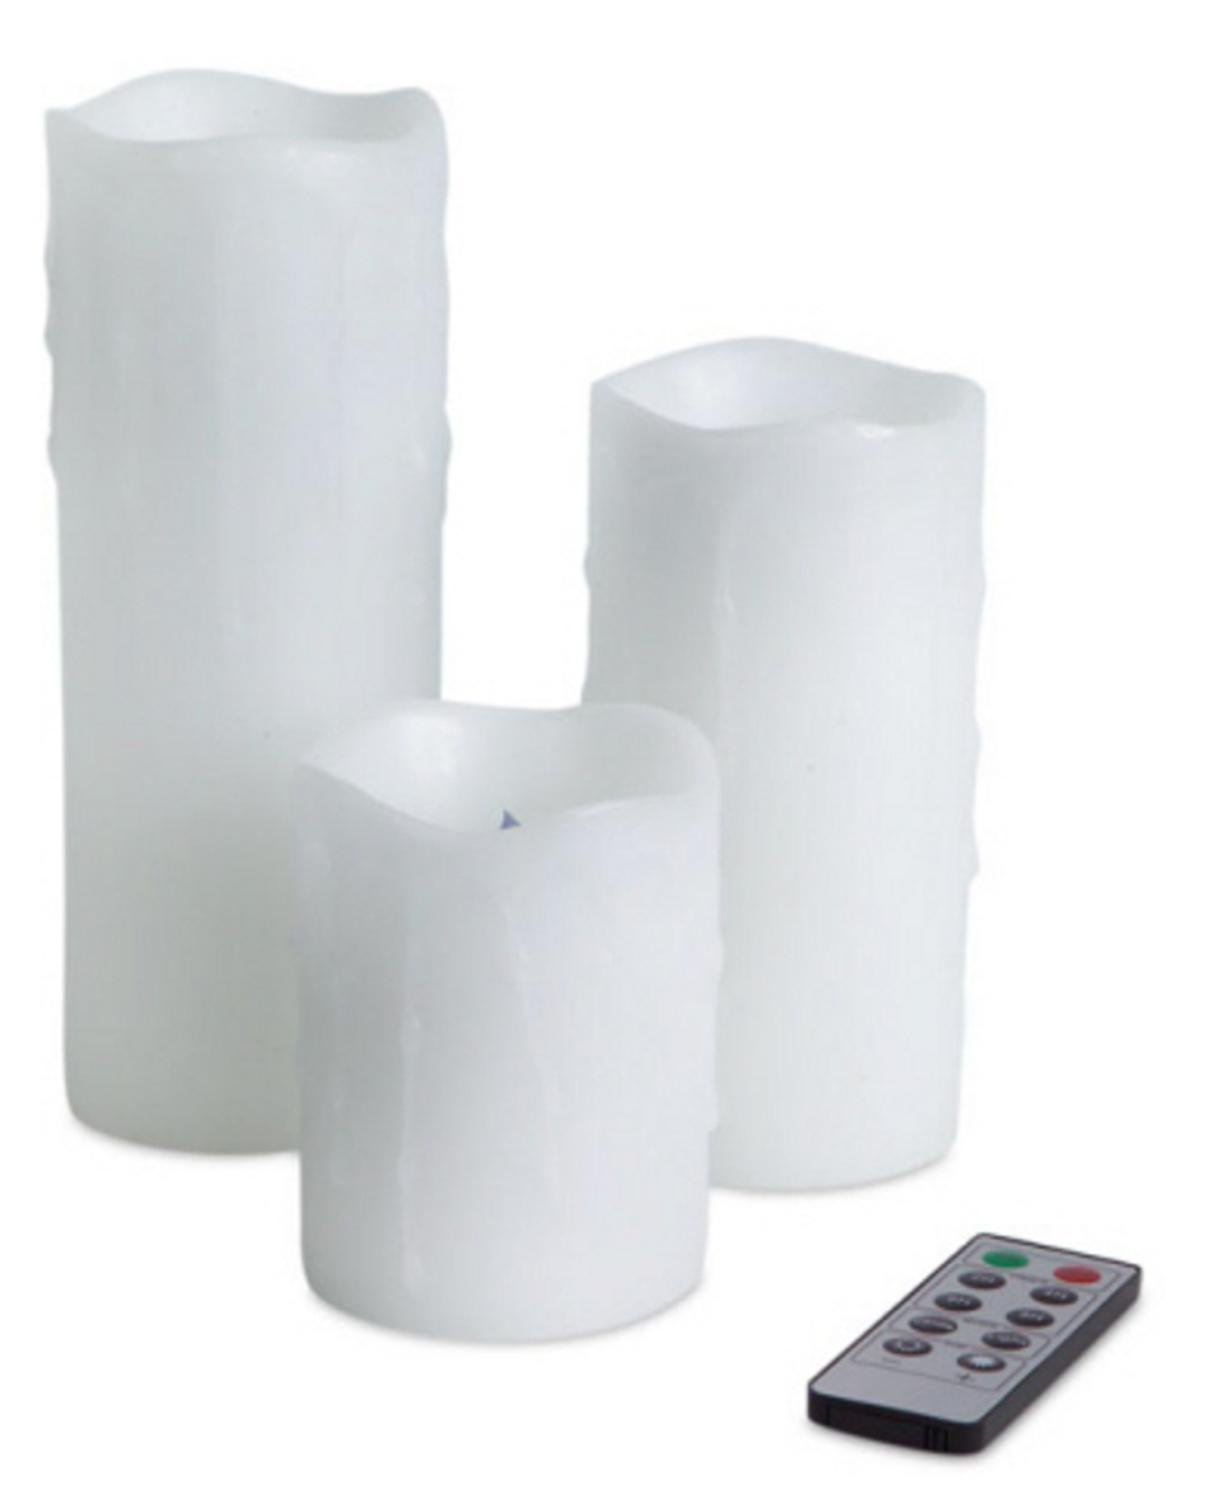 6 White Dripping Remote Controlled Battery-Operated LED Flameless Pillar Candles